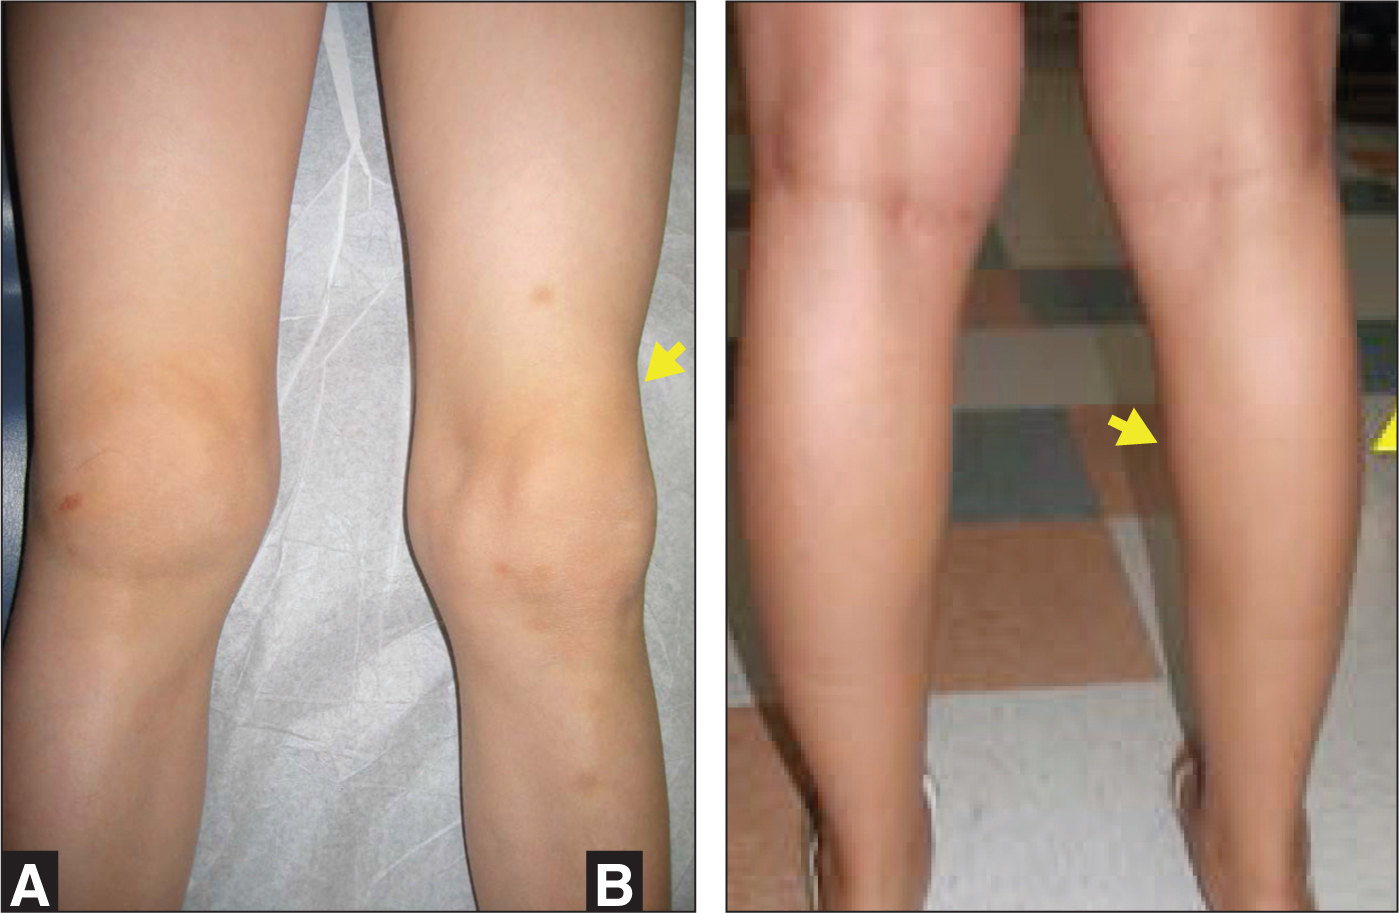 Prolonged limping leads to muscle atrophy. (A) Subtle thigh and (B) calf muscle atrophy are indicated by arrows. Comparing sides for asymmetrical findings is helpful.